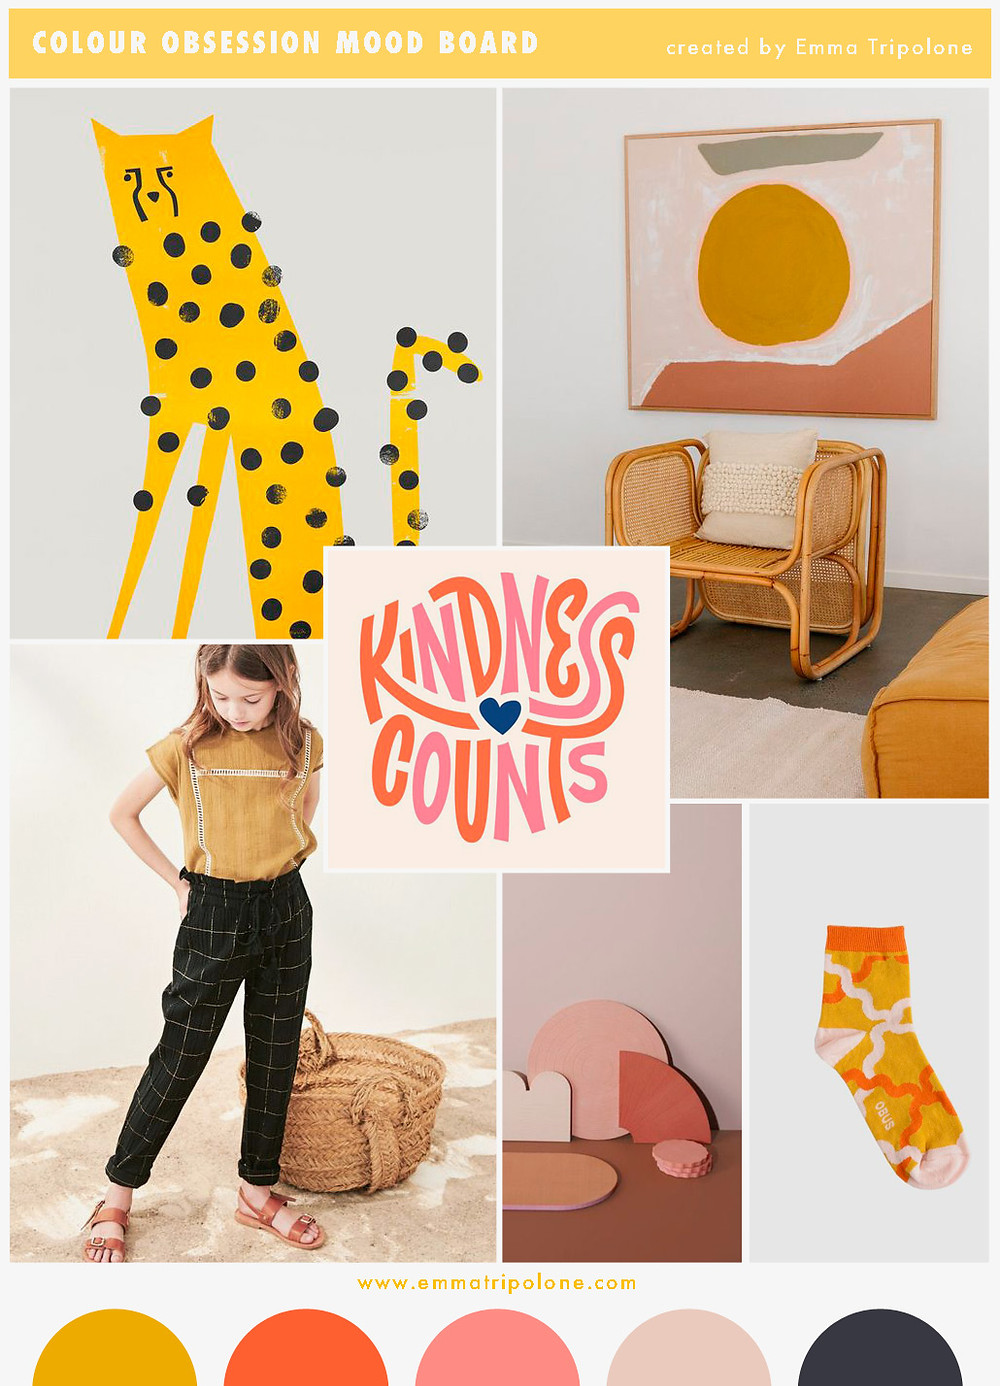 mood board showing golden sunset themed color trend